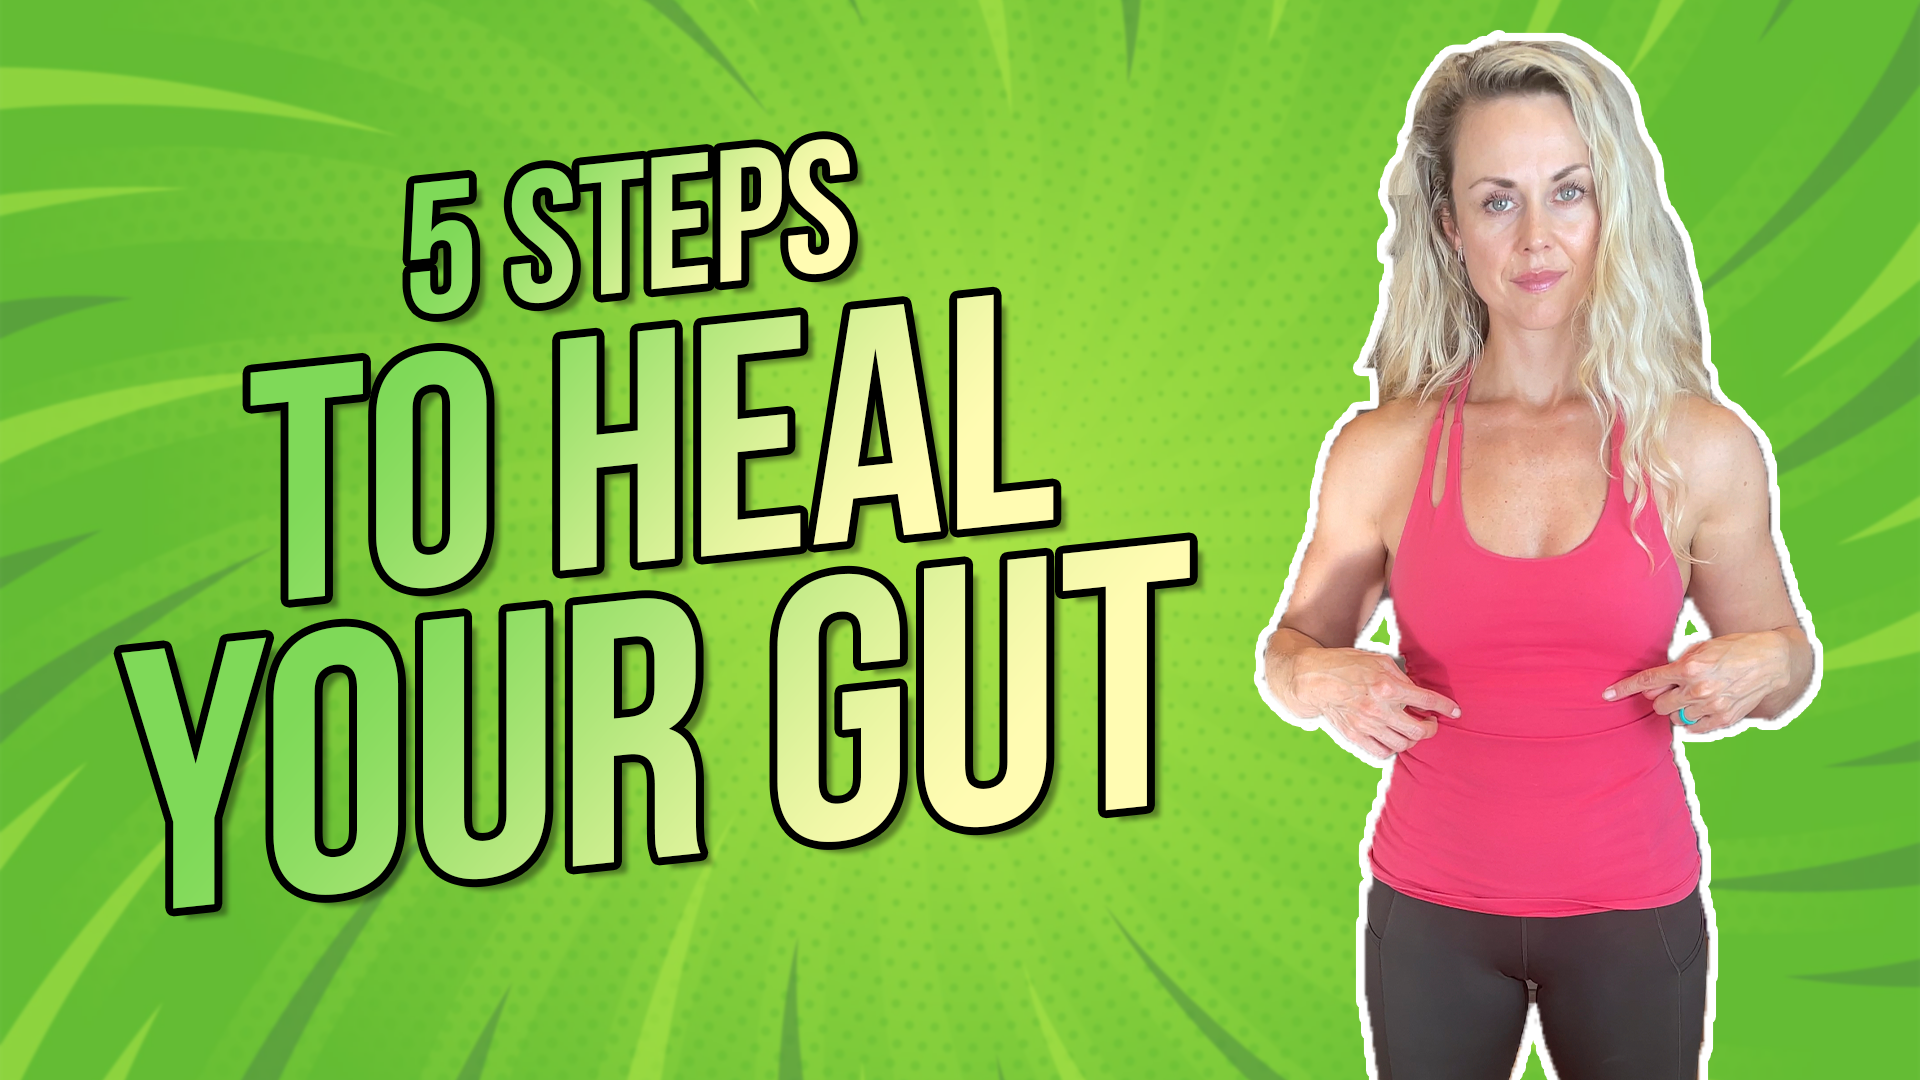 5 STEPS TO HEAL YOUR GUT